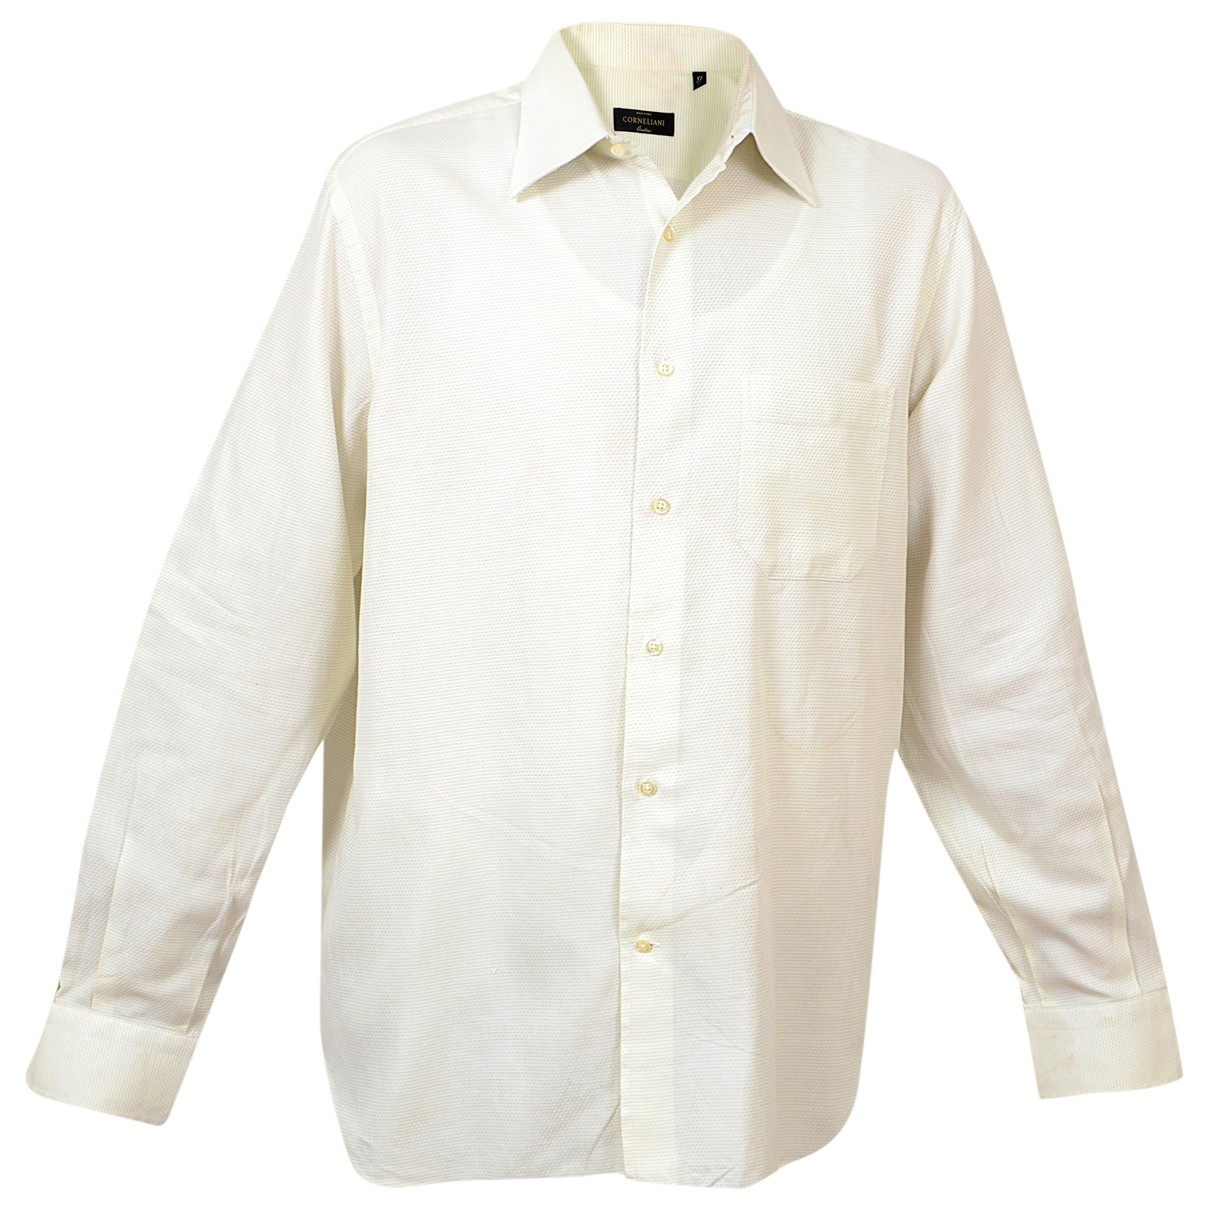 Corneliani \N White Cotton Shirts for Men 43 EU (tour de cou / collar)